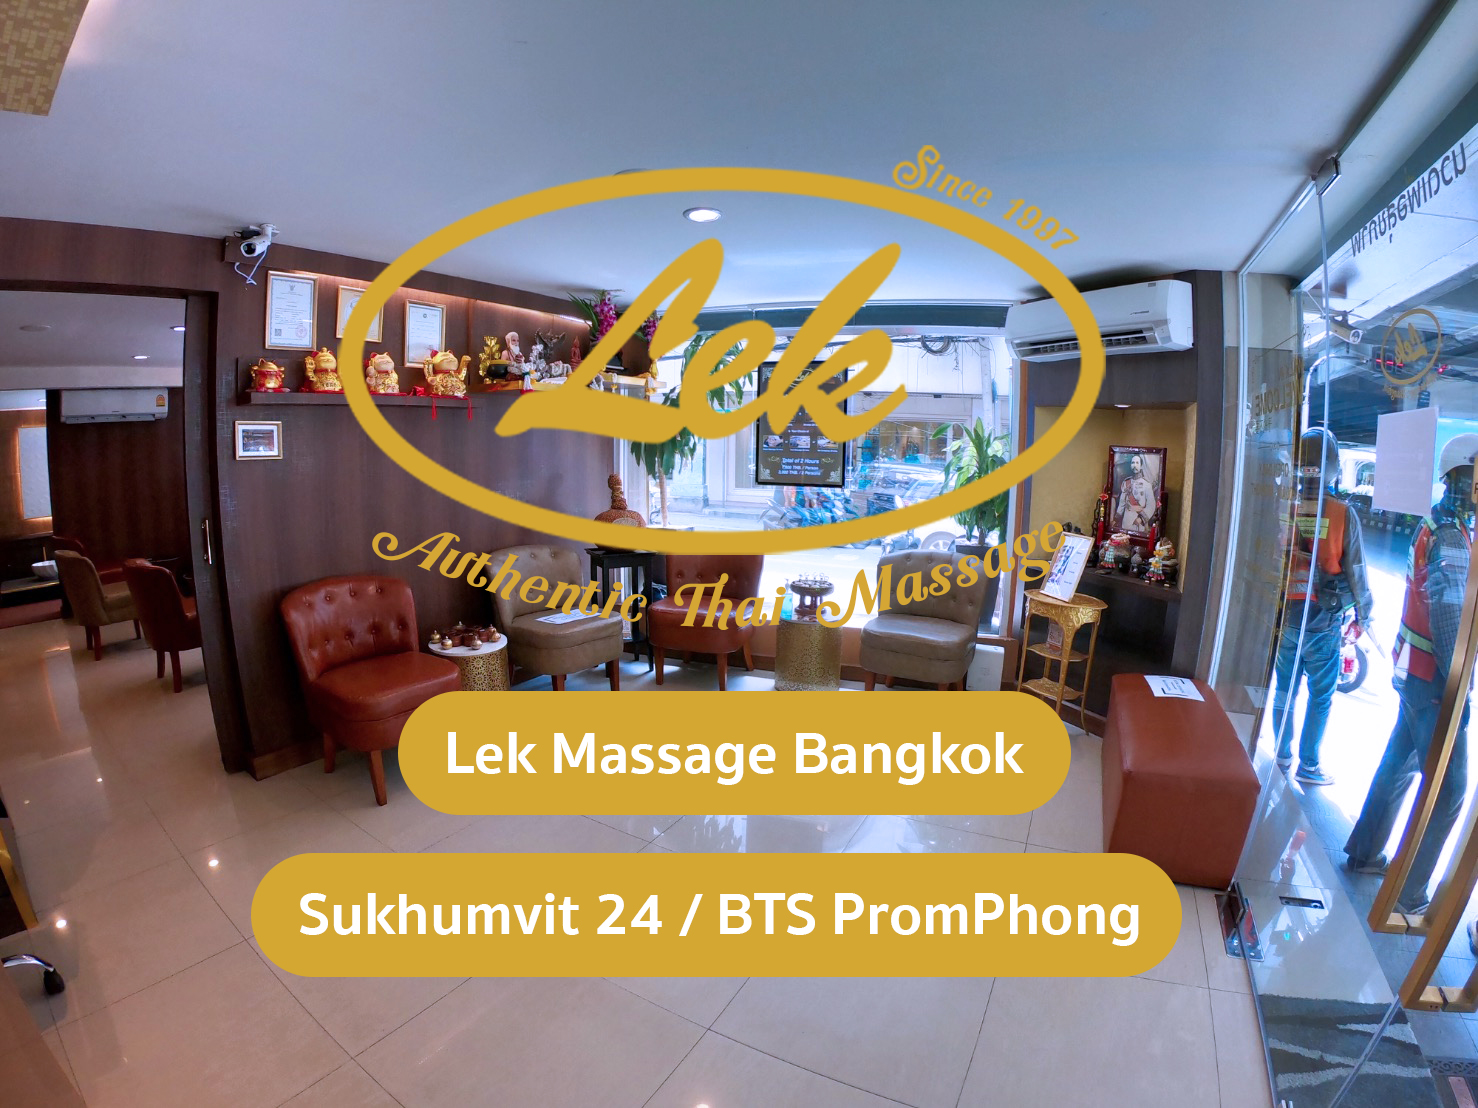 Lek Massage Bangkok